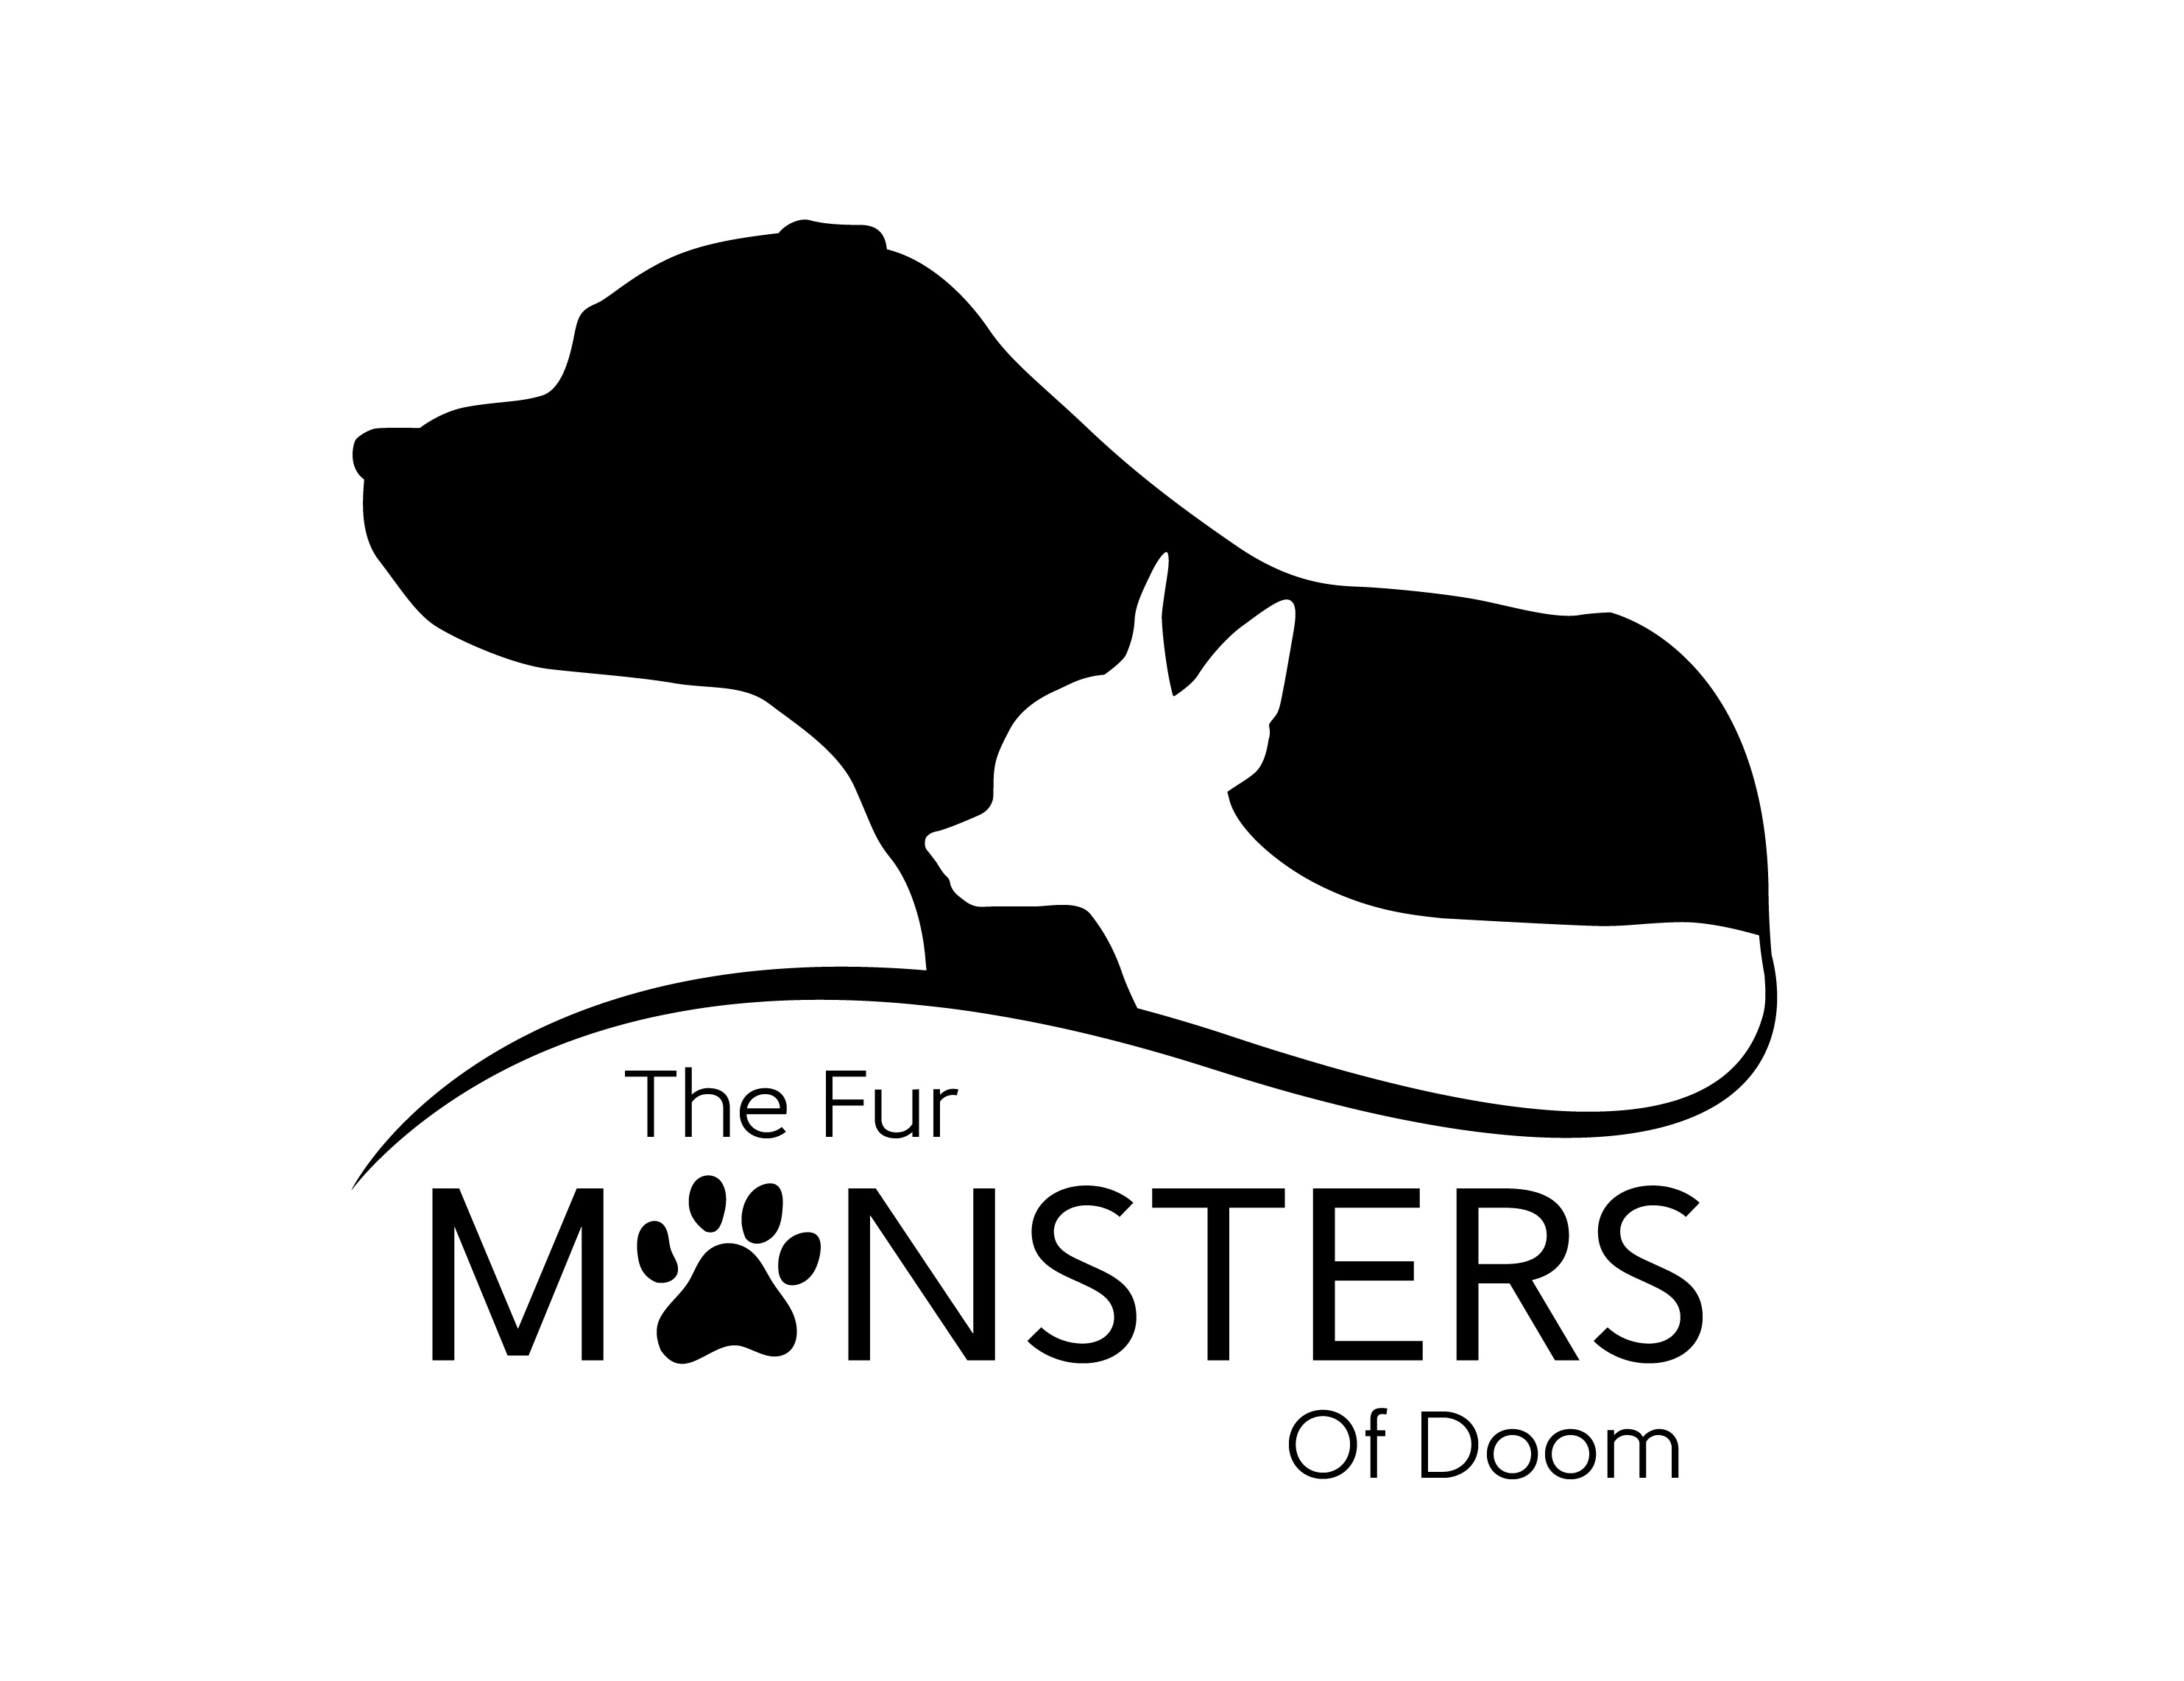 The Fur Monsters Of Doom Logo